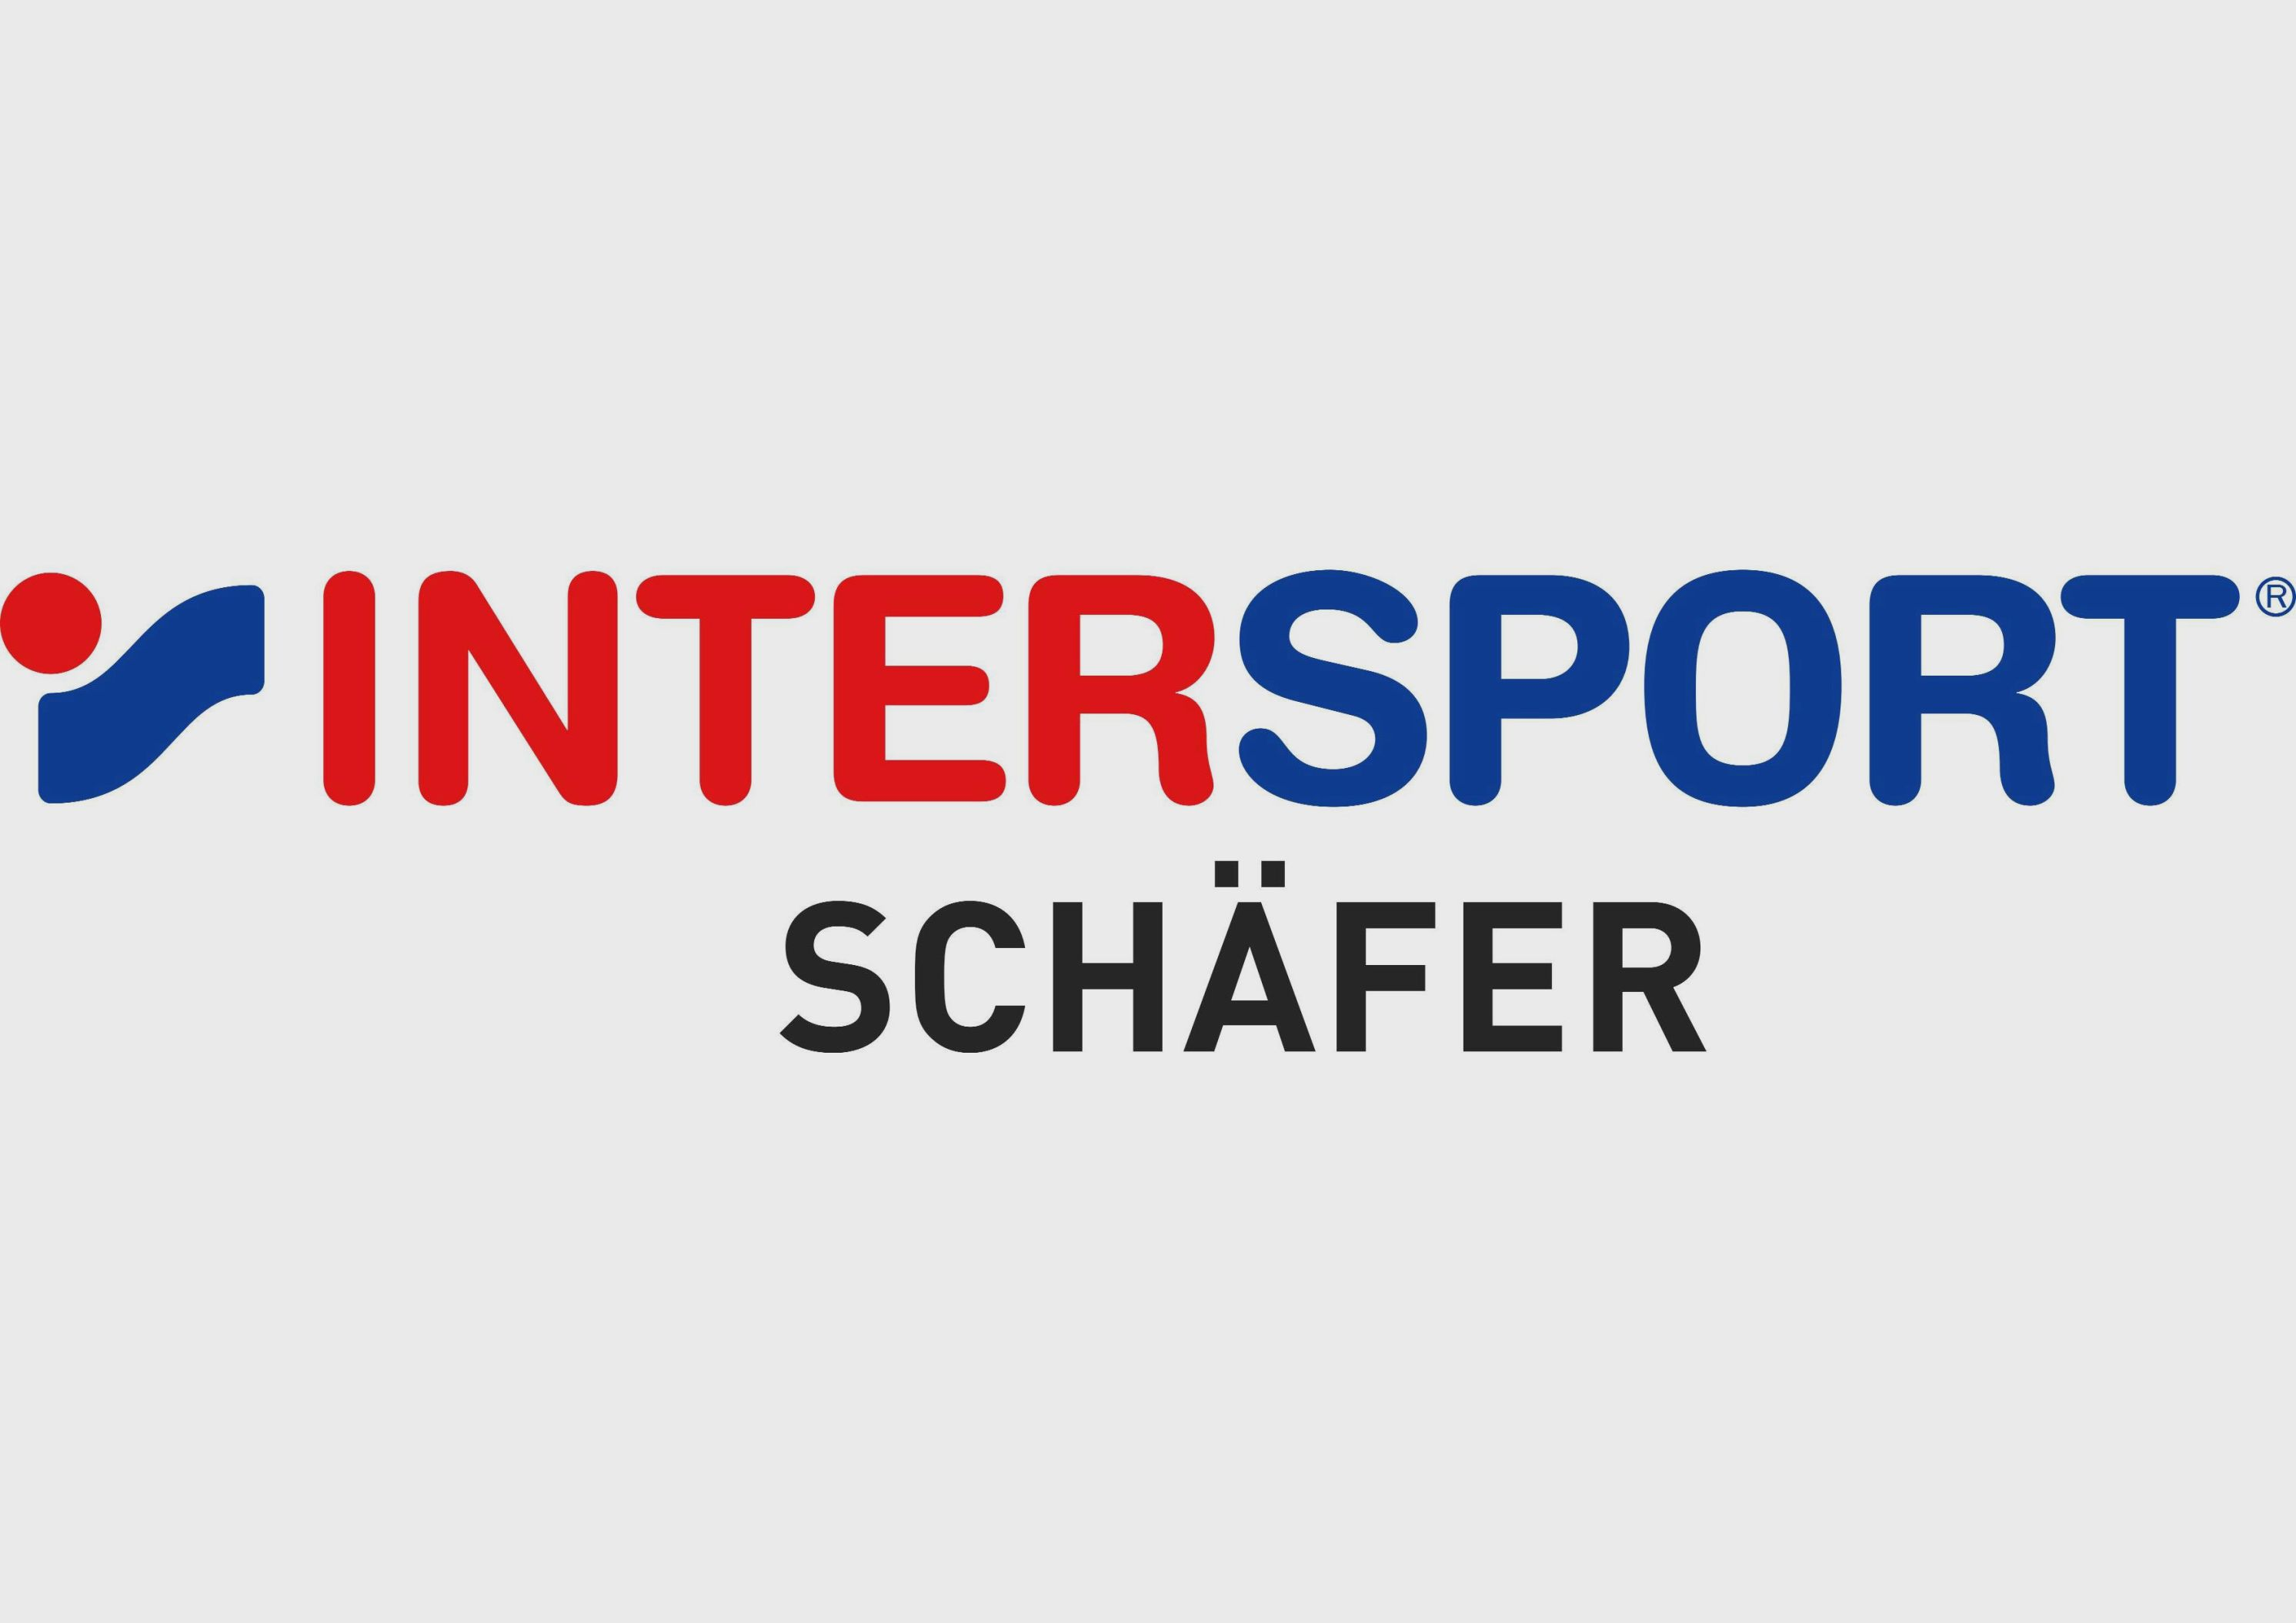 Intersport Schäfer